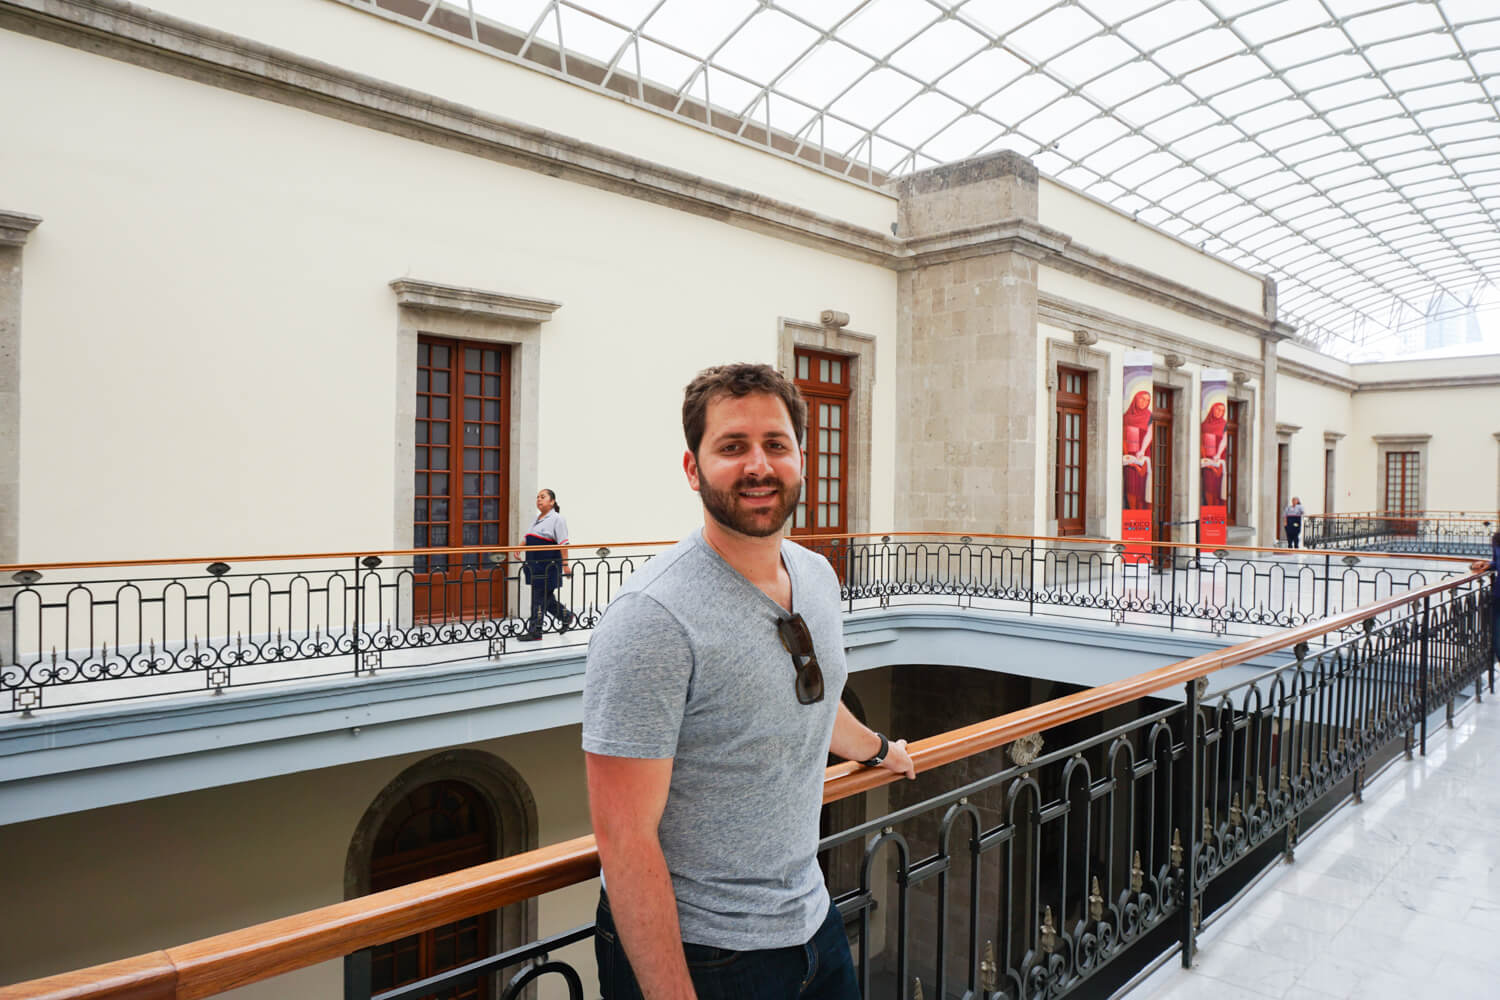 What to do in Mexico City: visit Castillo de Chapultepec